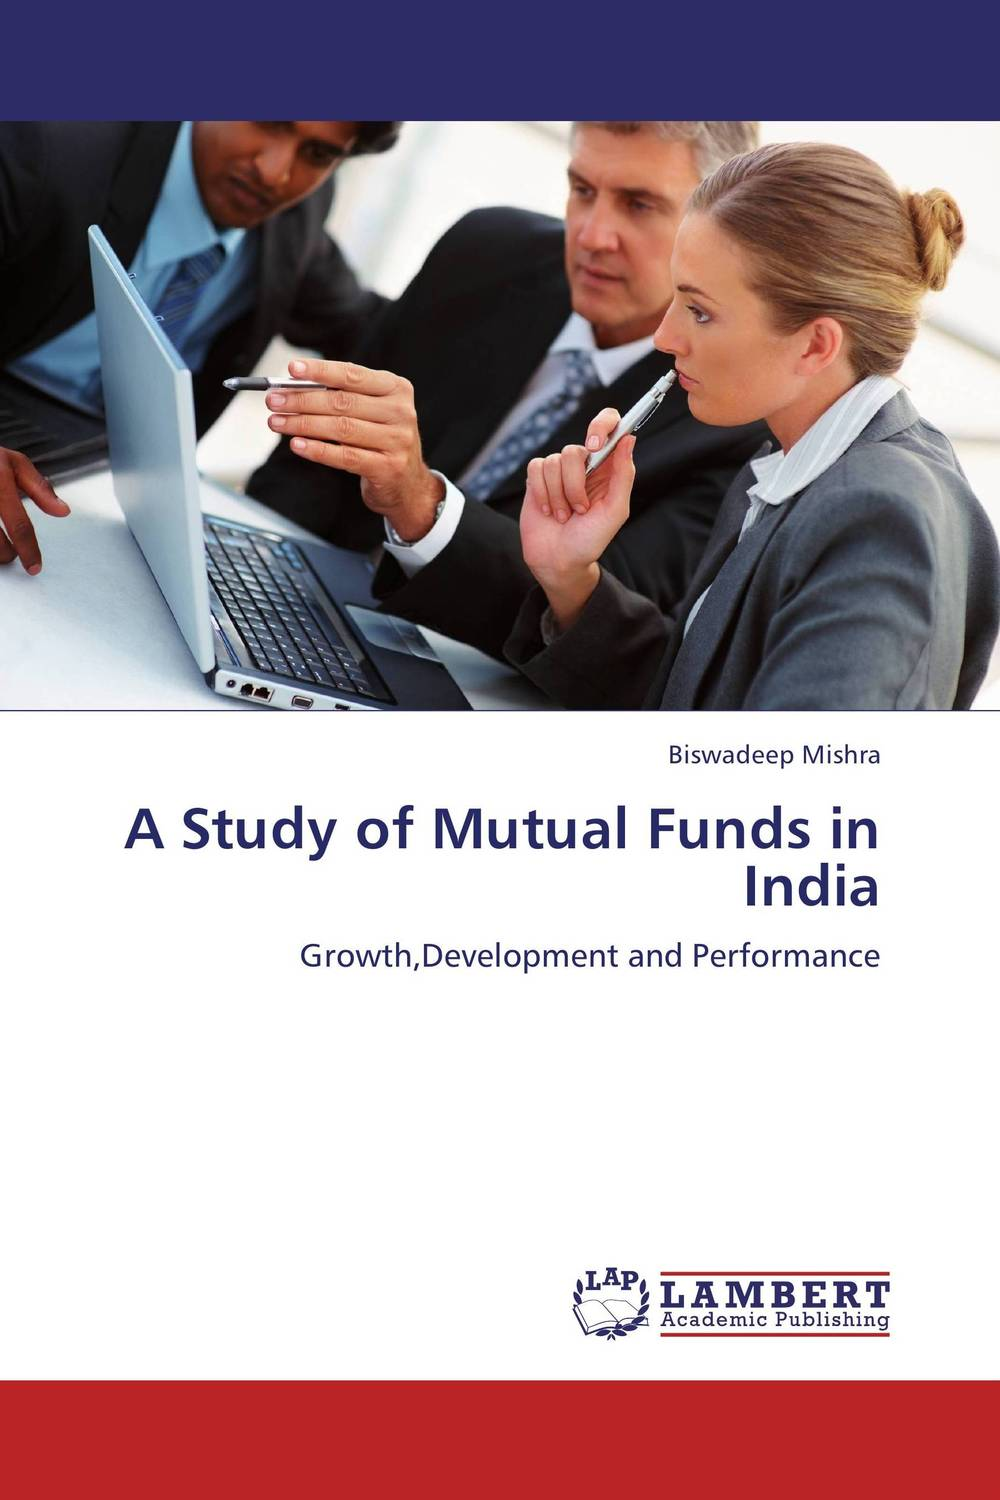 A Study of Mutual Funds in India our mutual friend